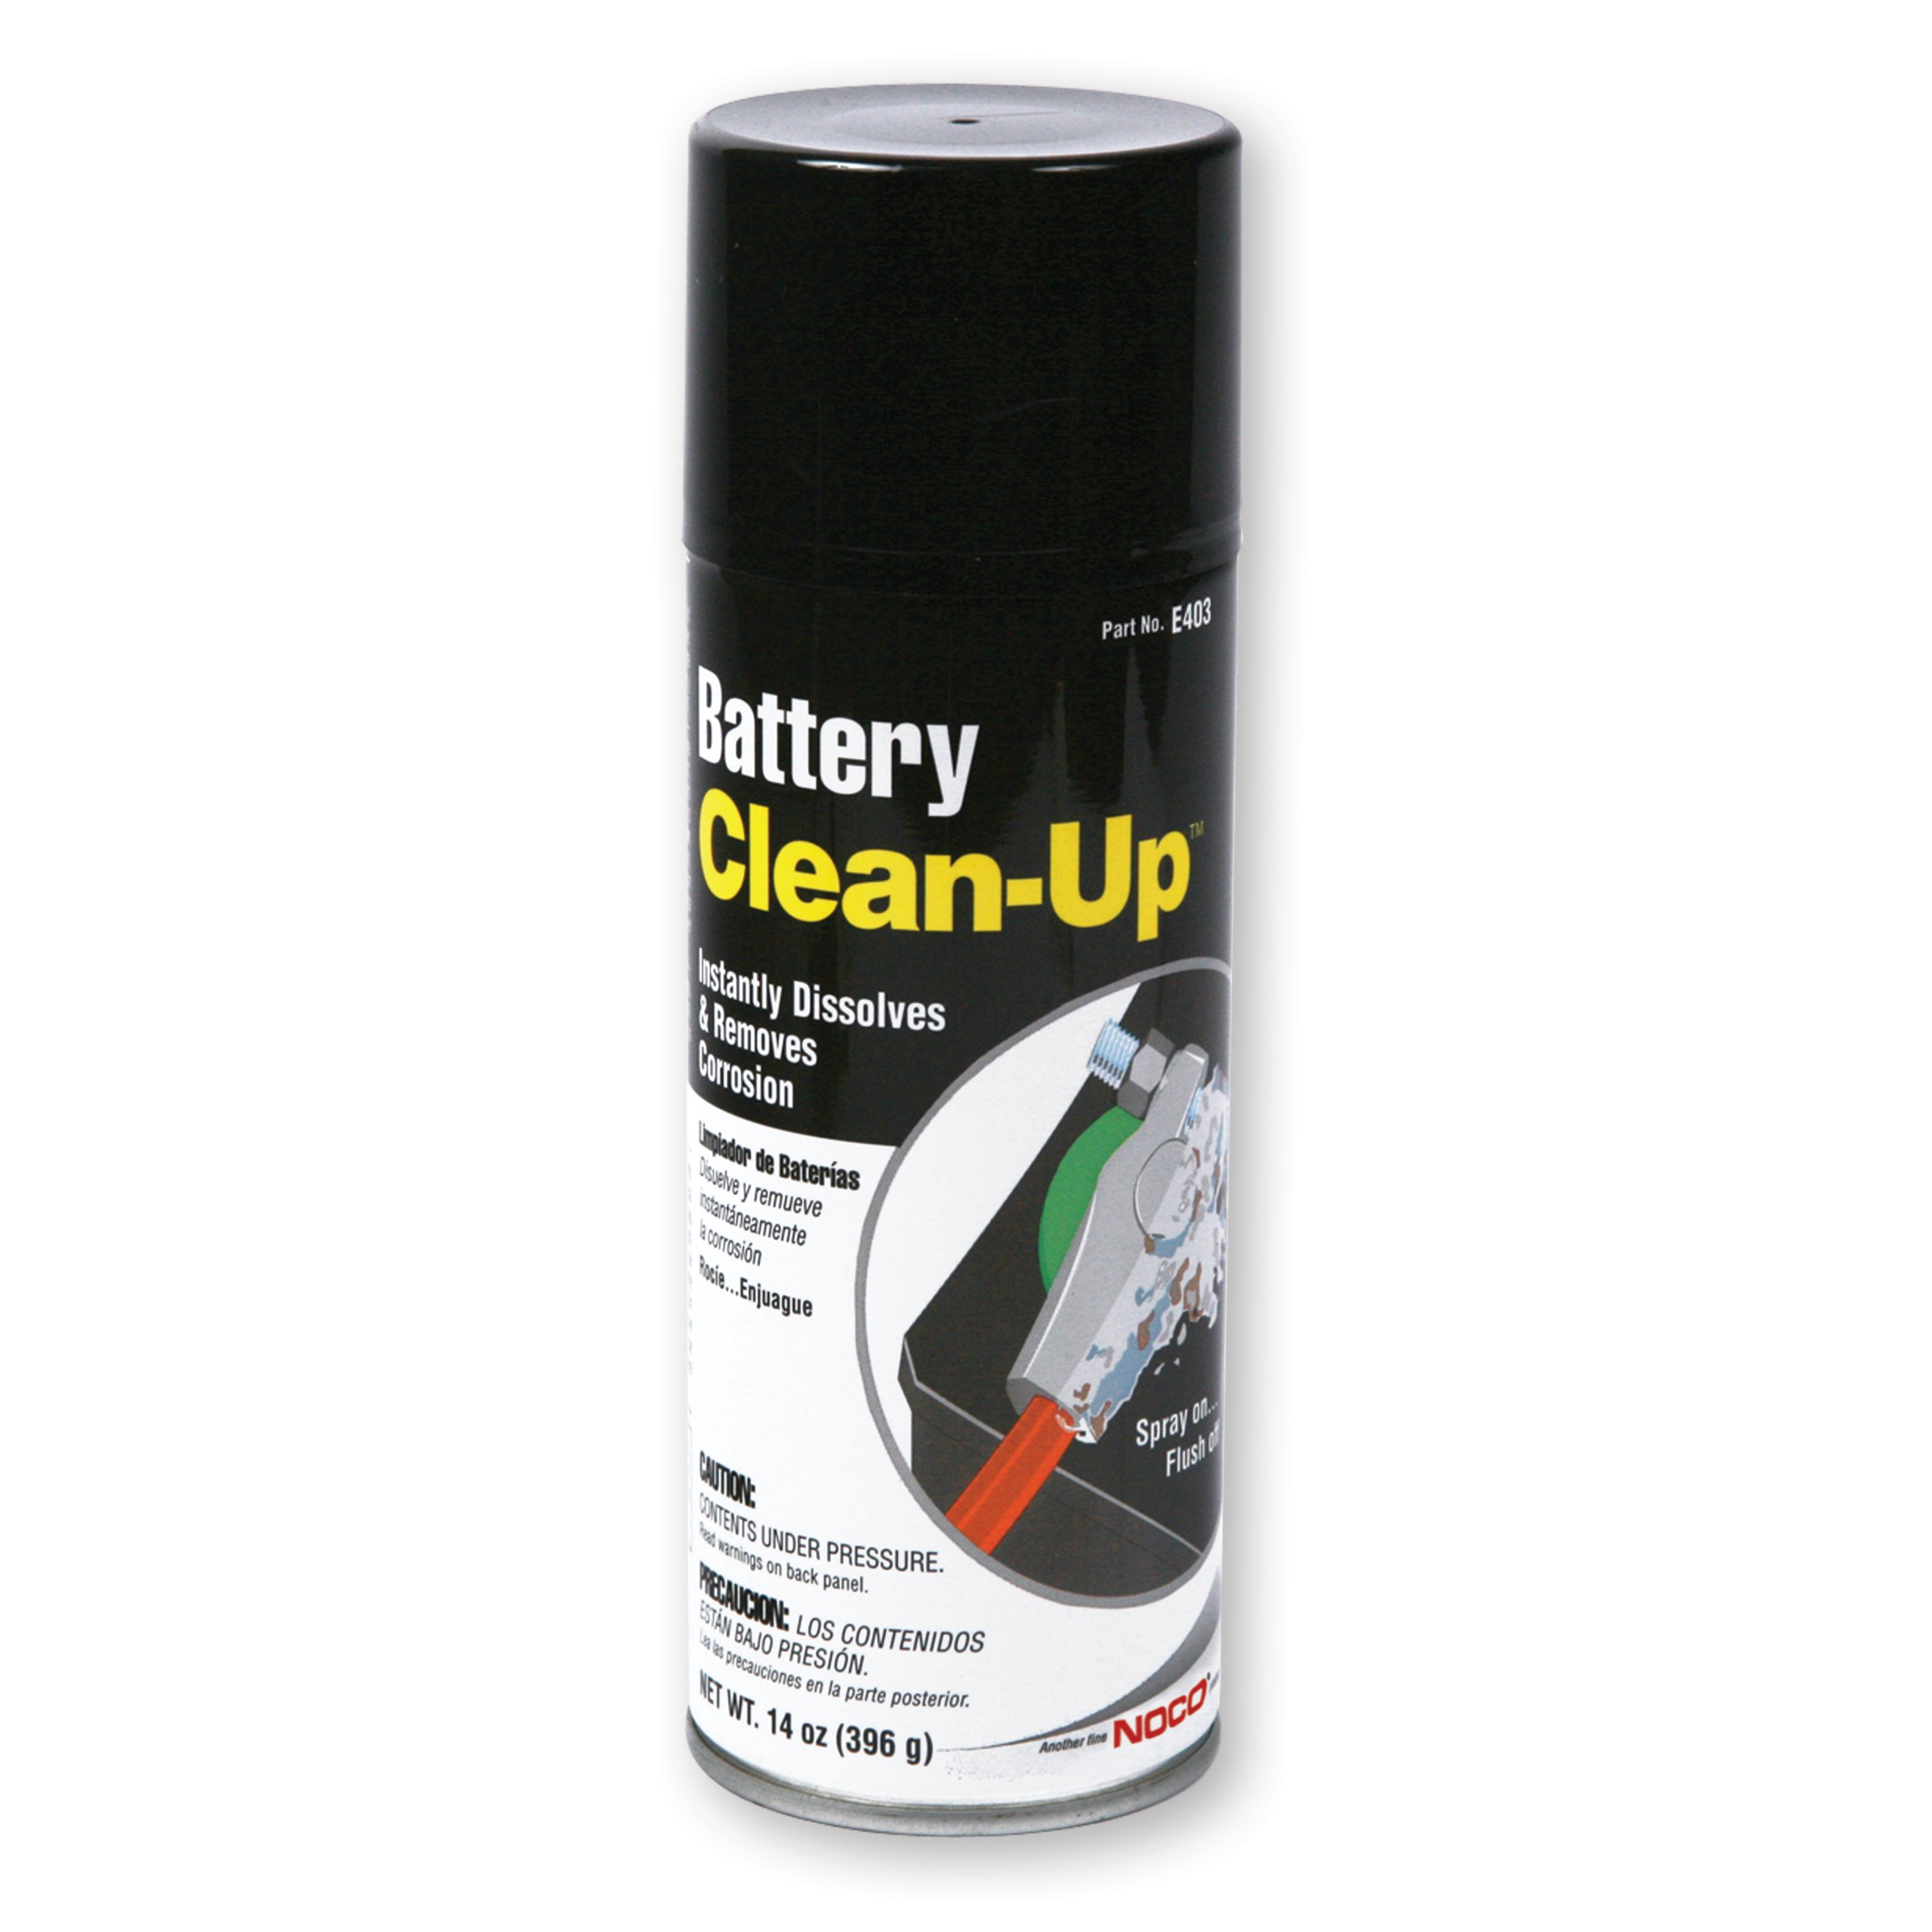 E403 Noco Battery Cleaner For Removing Of Corrosive